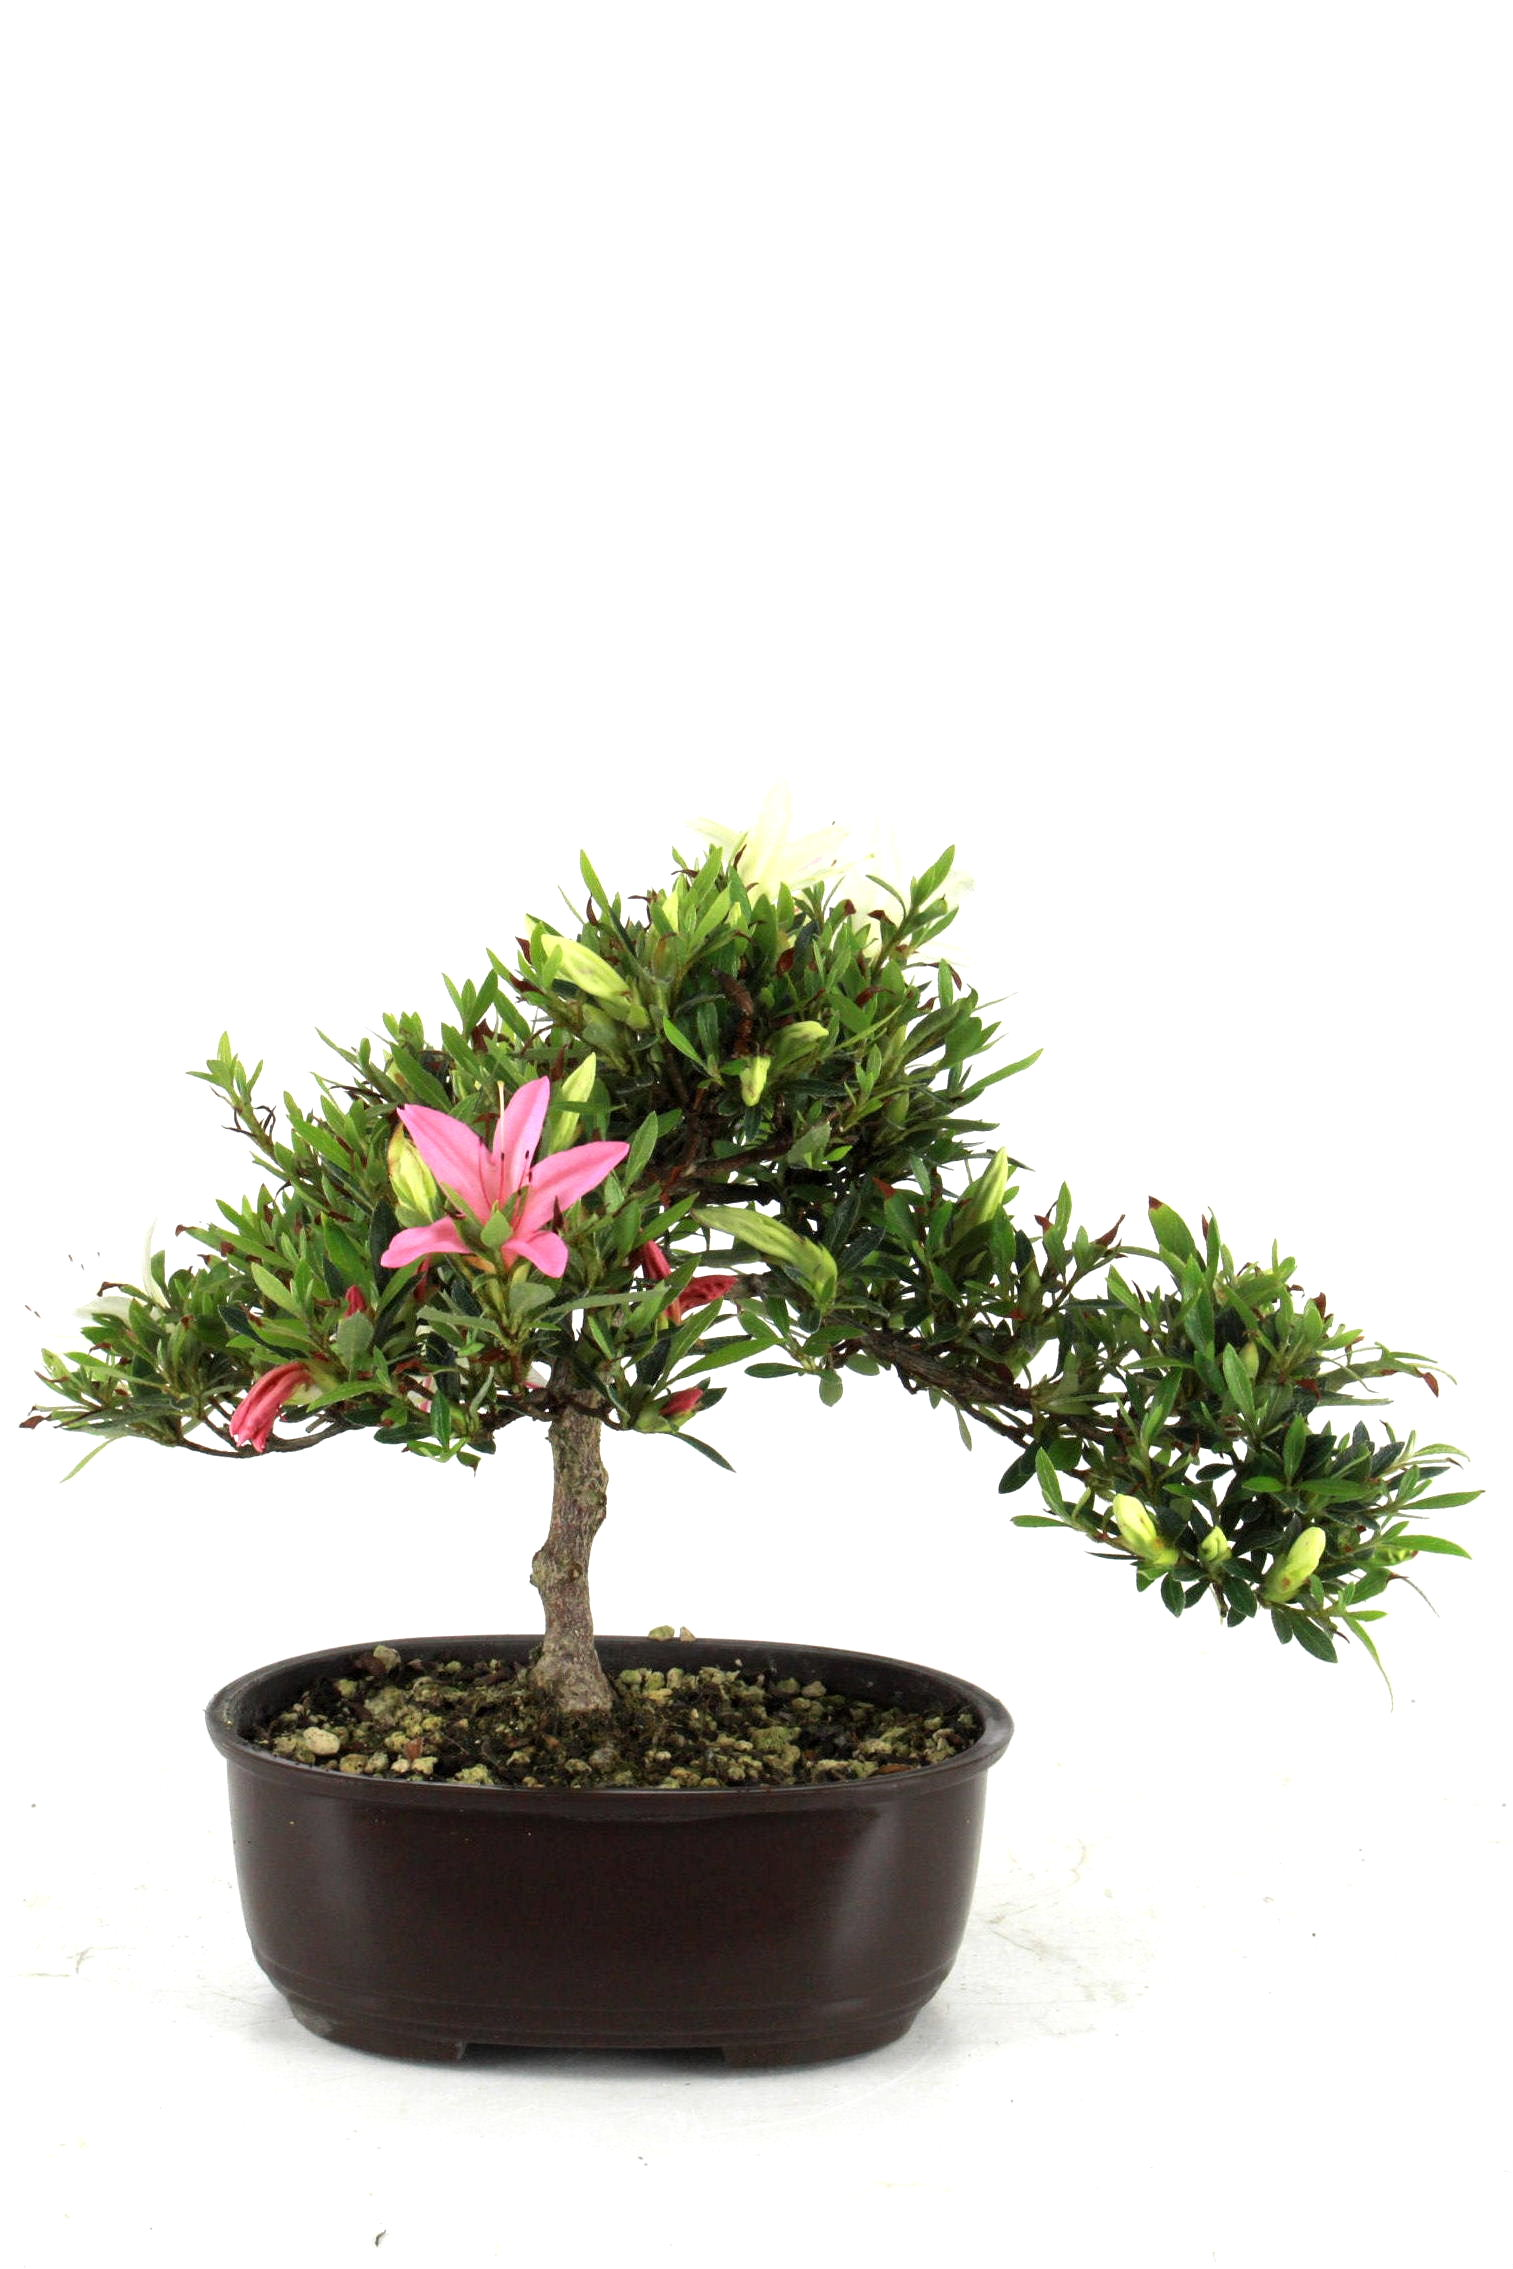 Azalee rhododendron indicum 23 cm p169 bei oyaki bonsai kaufen for Bonsai onlineshop